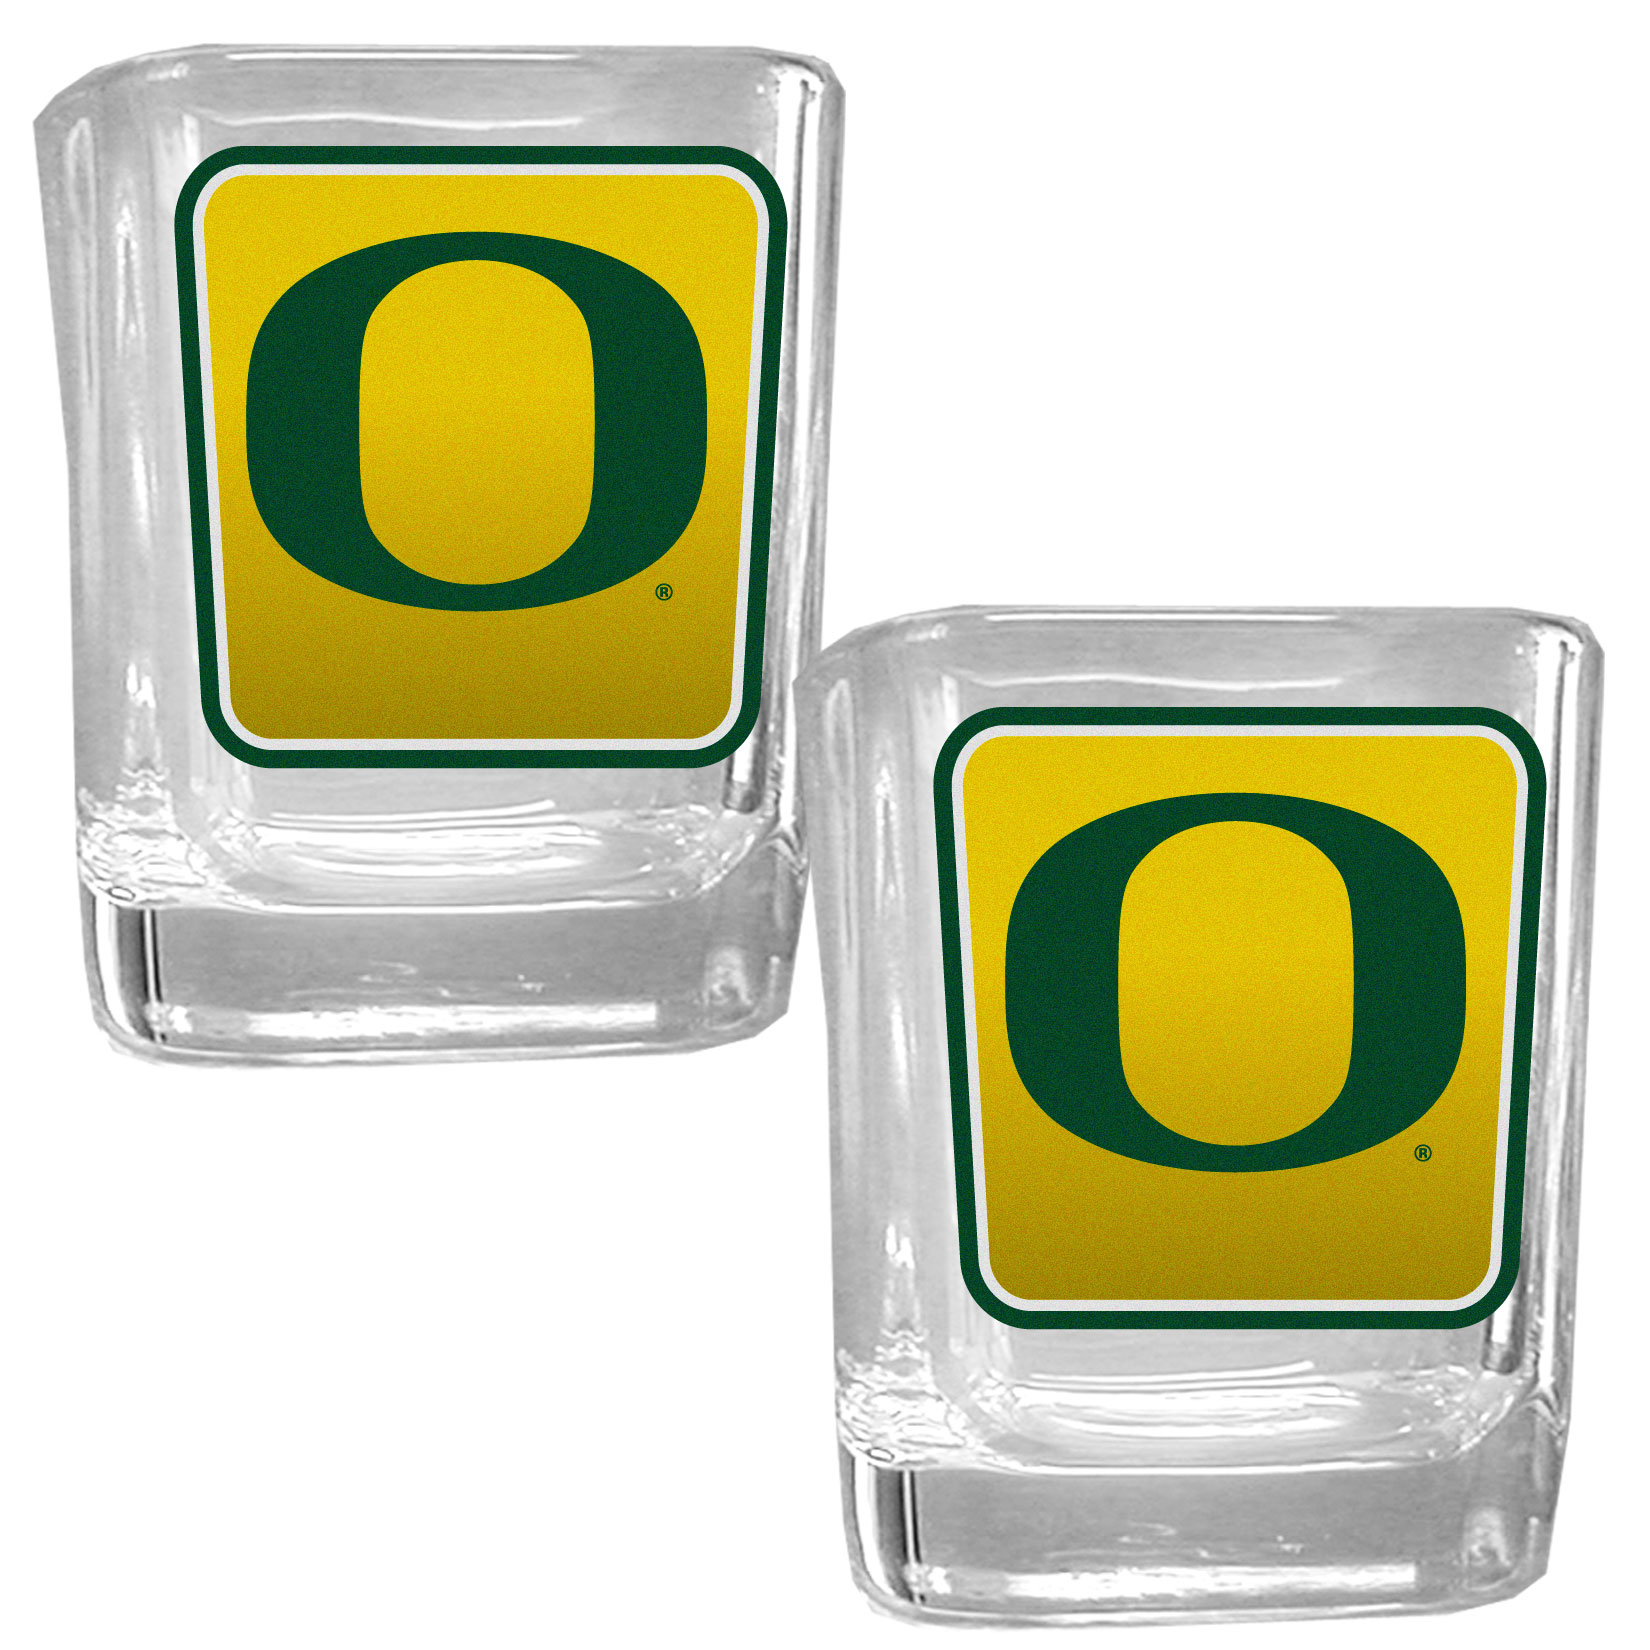 Oregon Ducks Square Glass Shot Glass Set - Our glass shot glasses are perfect for collectors or any game day event. The 2 ounce glasses feature bright, vidid digital Oregon Ducks graphics. Comes in a set of 2.